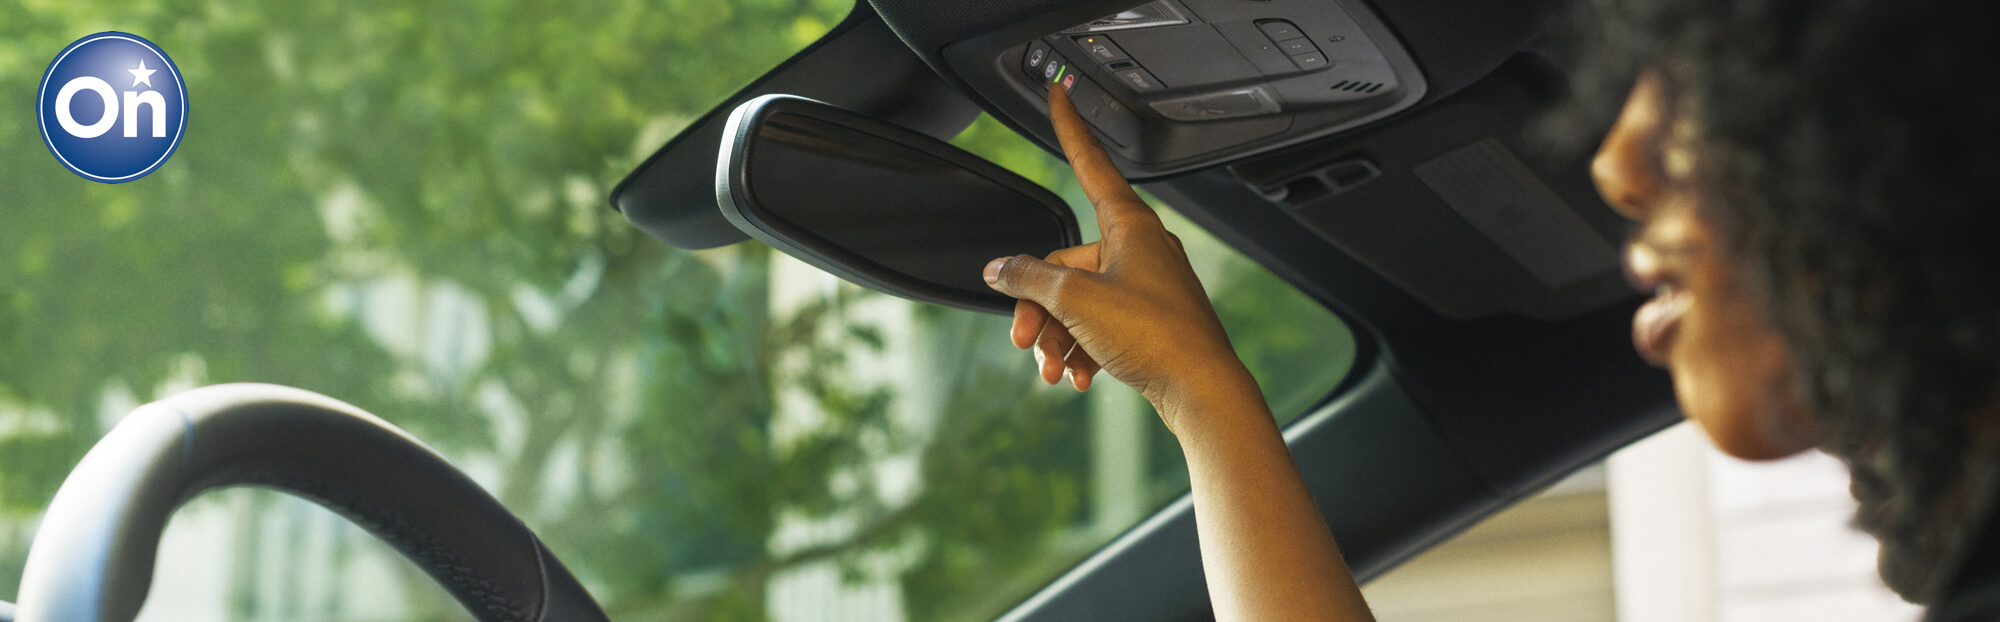 OnStar I Available from Montebello Chevy for Quick Safety Contact